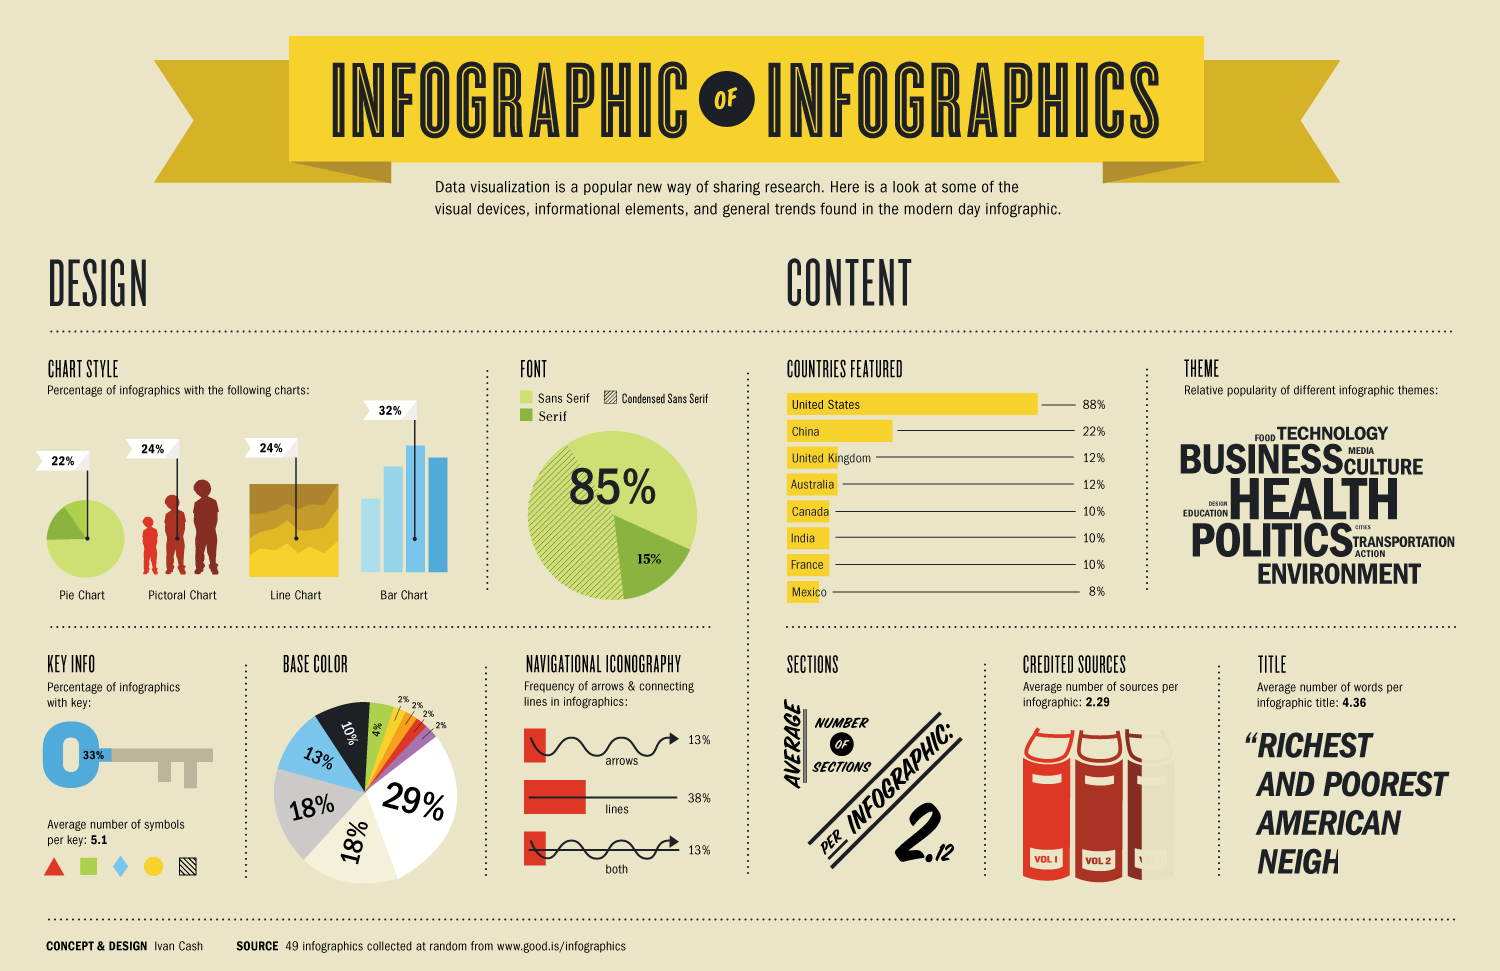 A collection of graphs and pie charts illustrating infographic trends